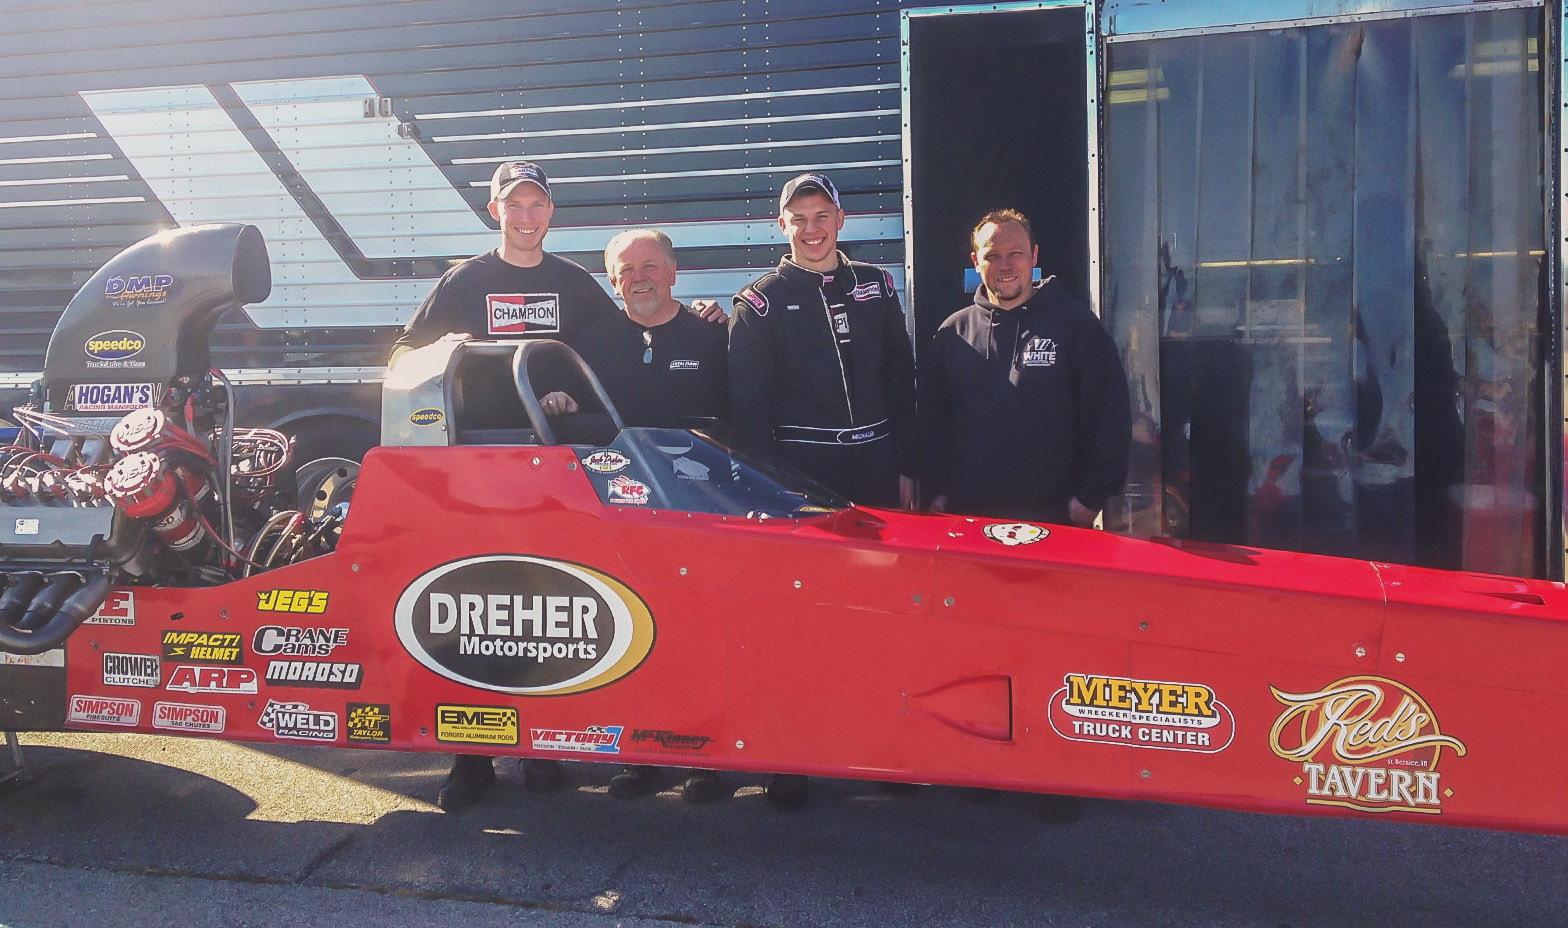 Kyle and Corey stand with car owners Randy and Jared Dreher after Corey completed his license upgrade to an A/fuel dragster